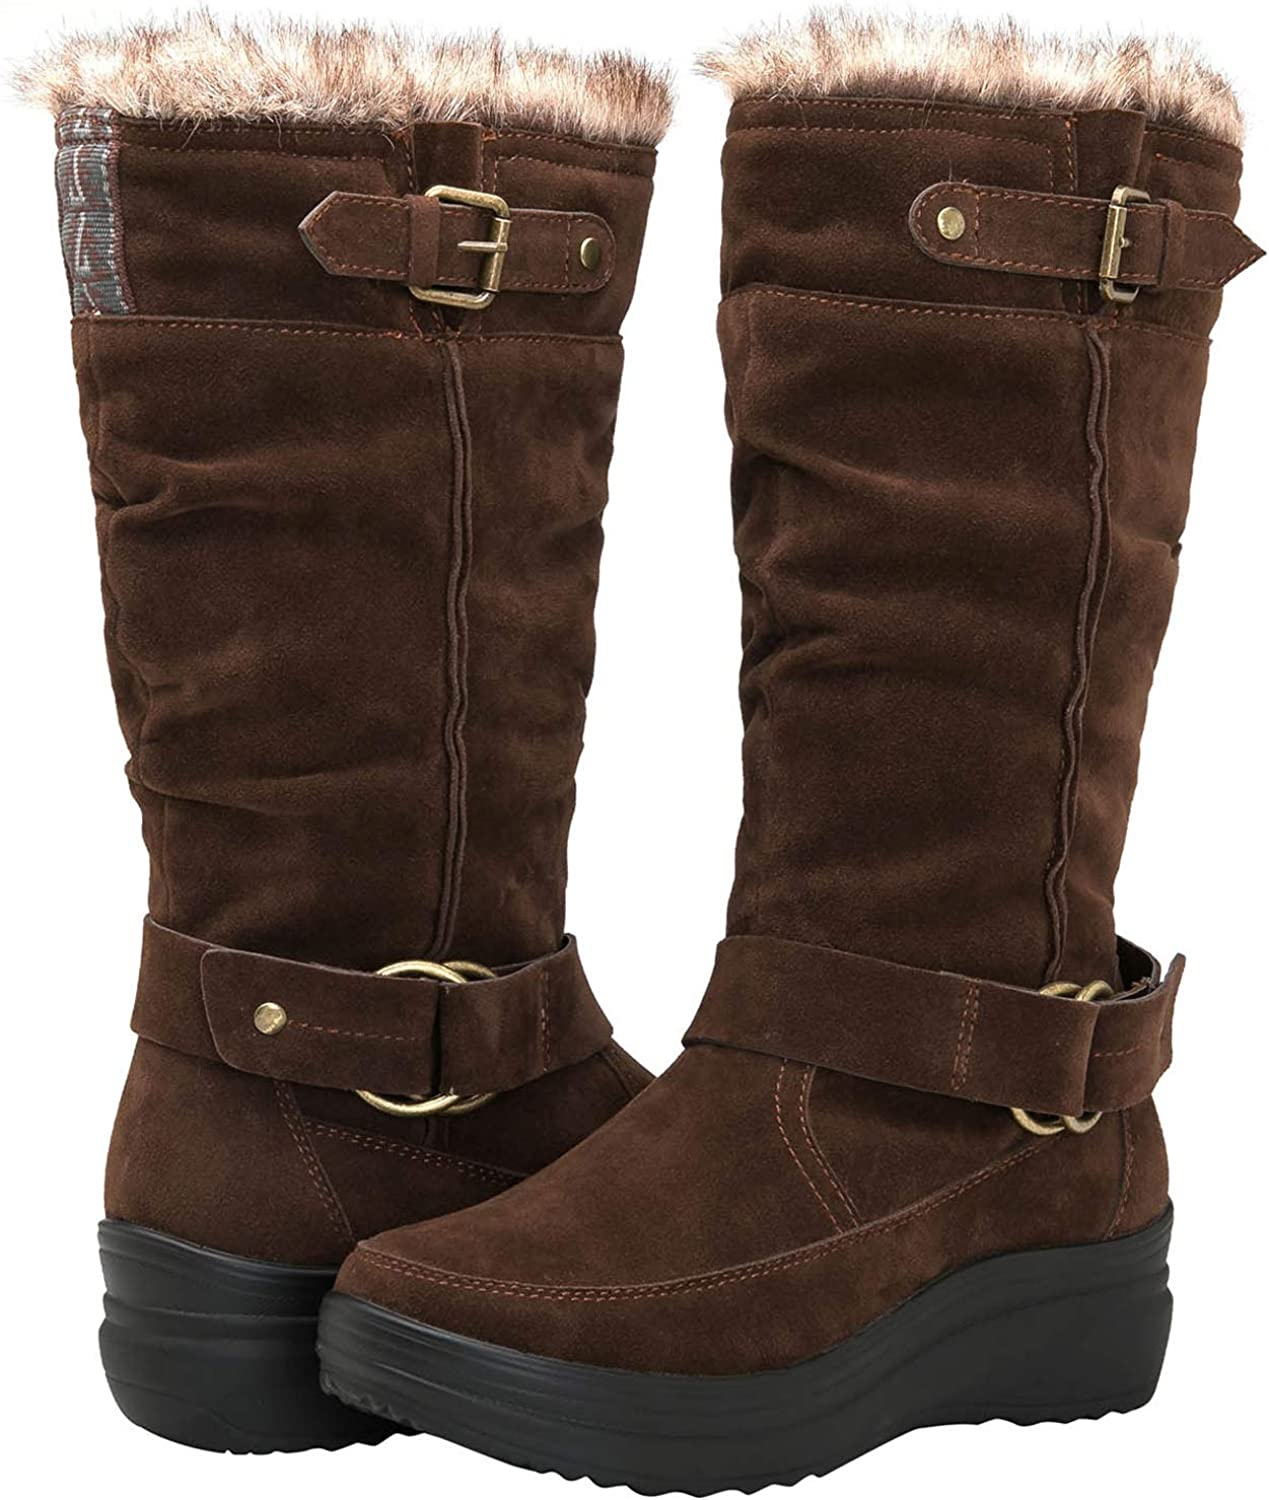 | GLOBALWIN Women's Rylee Fashion Snow Boots | Snow Boots